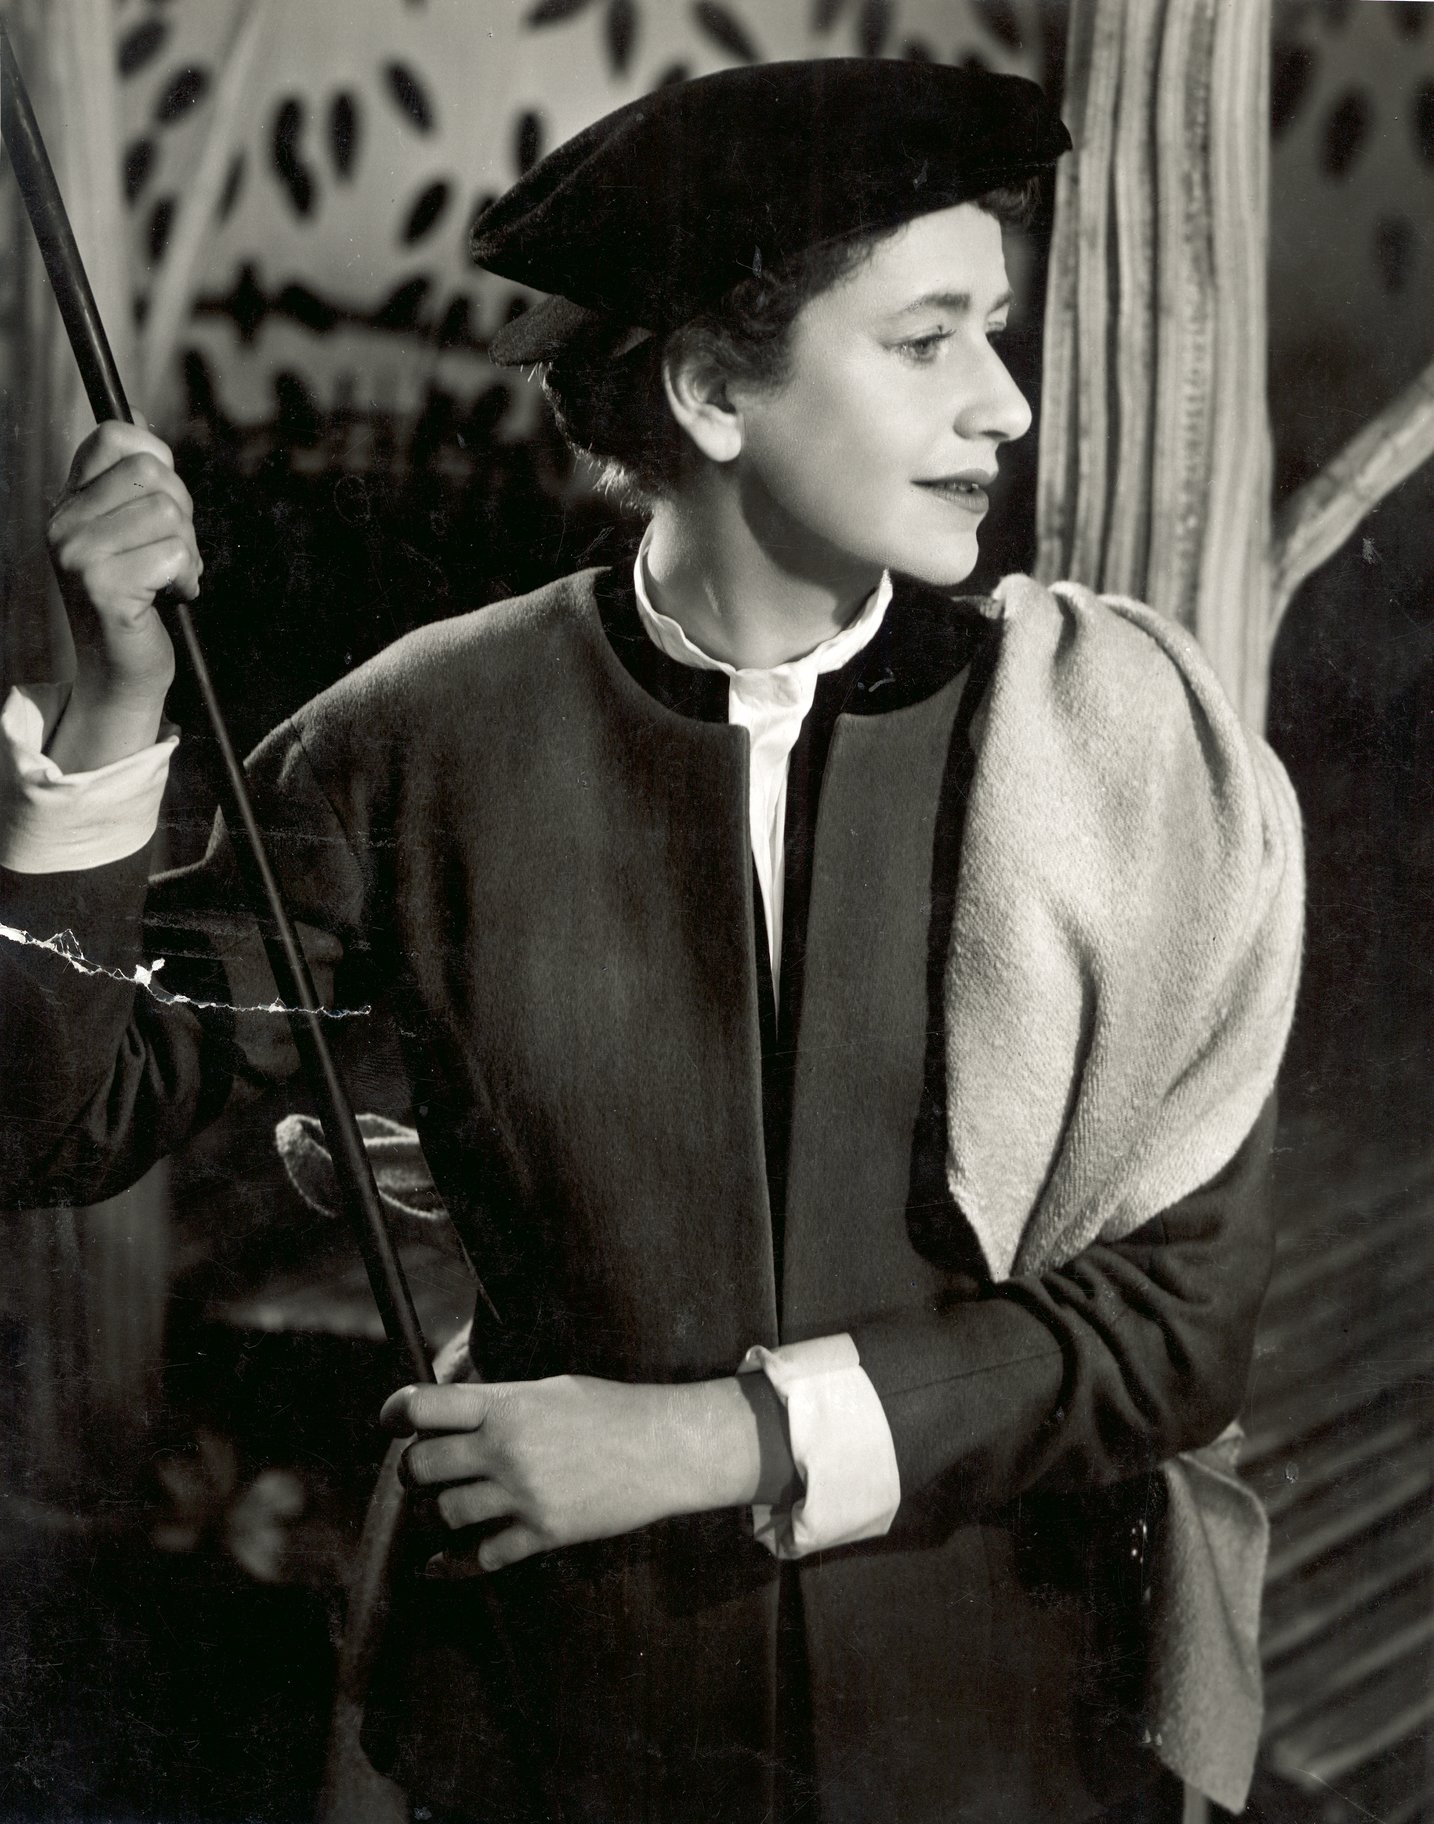 Peggy Ashcroft in a page outfit.